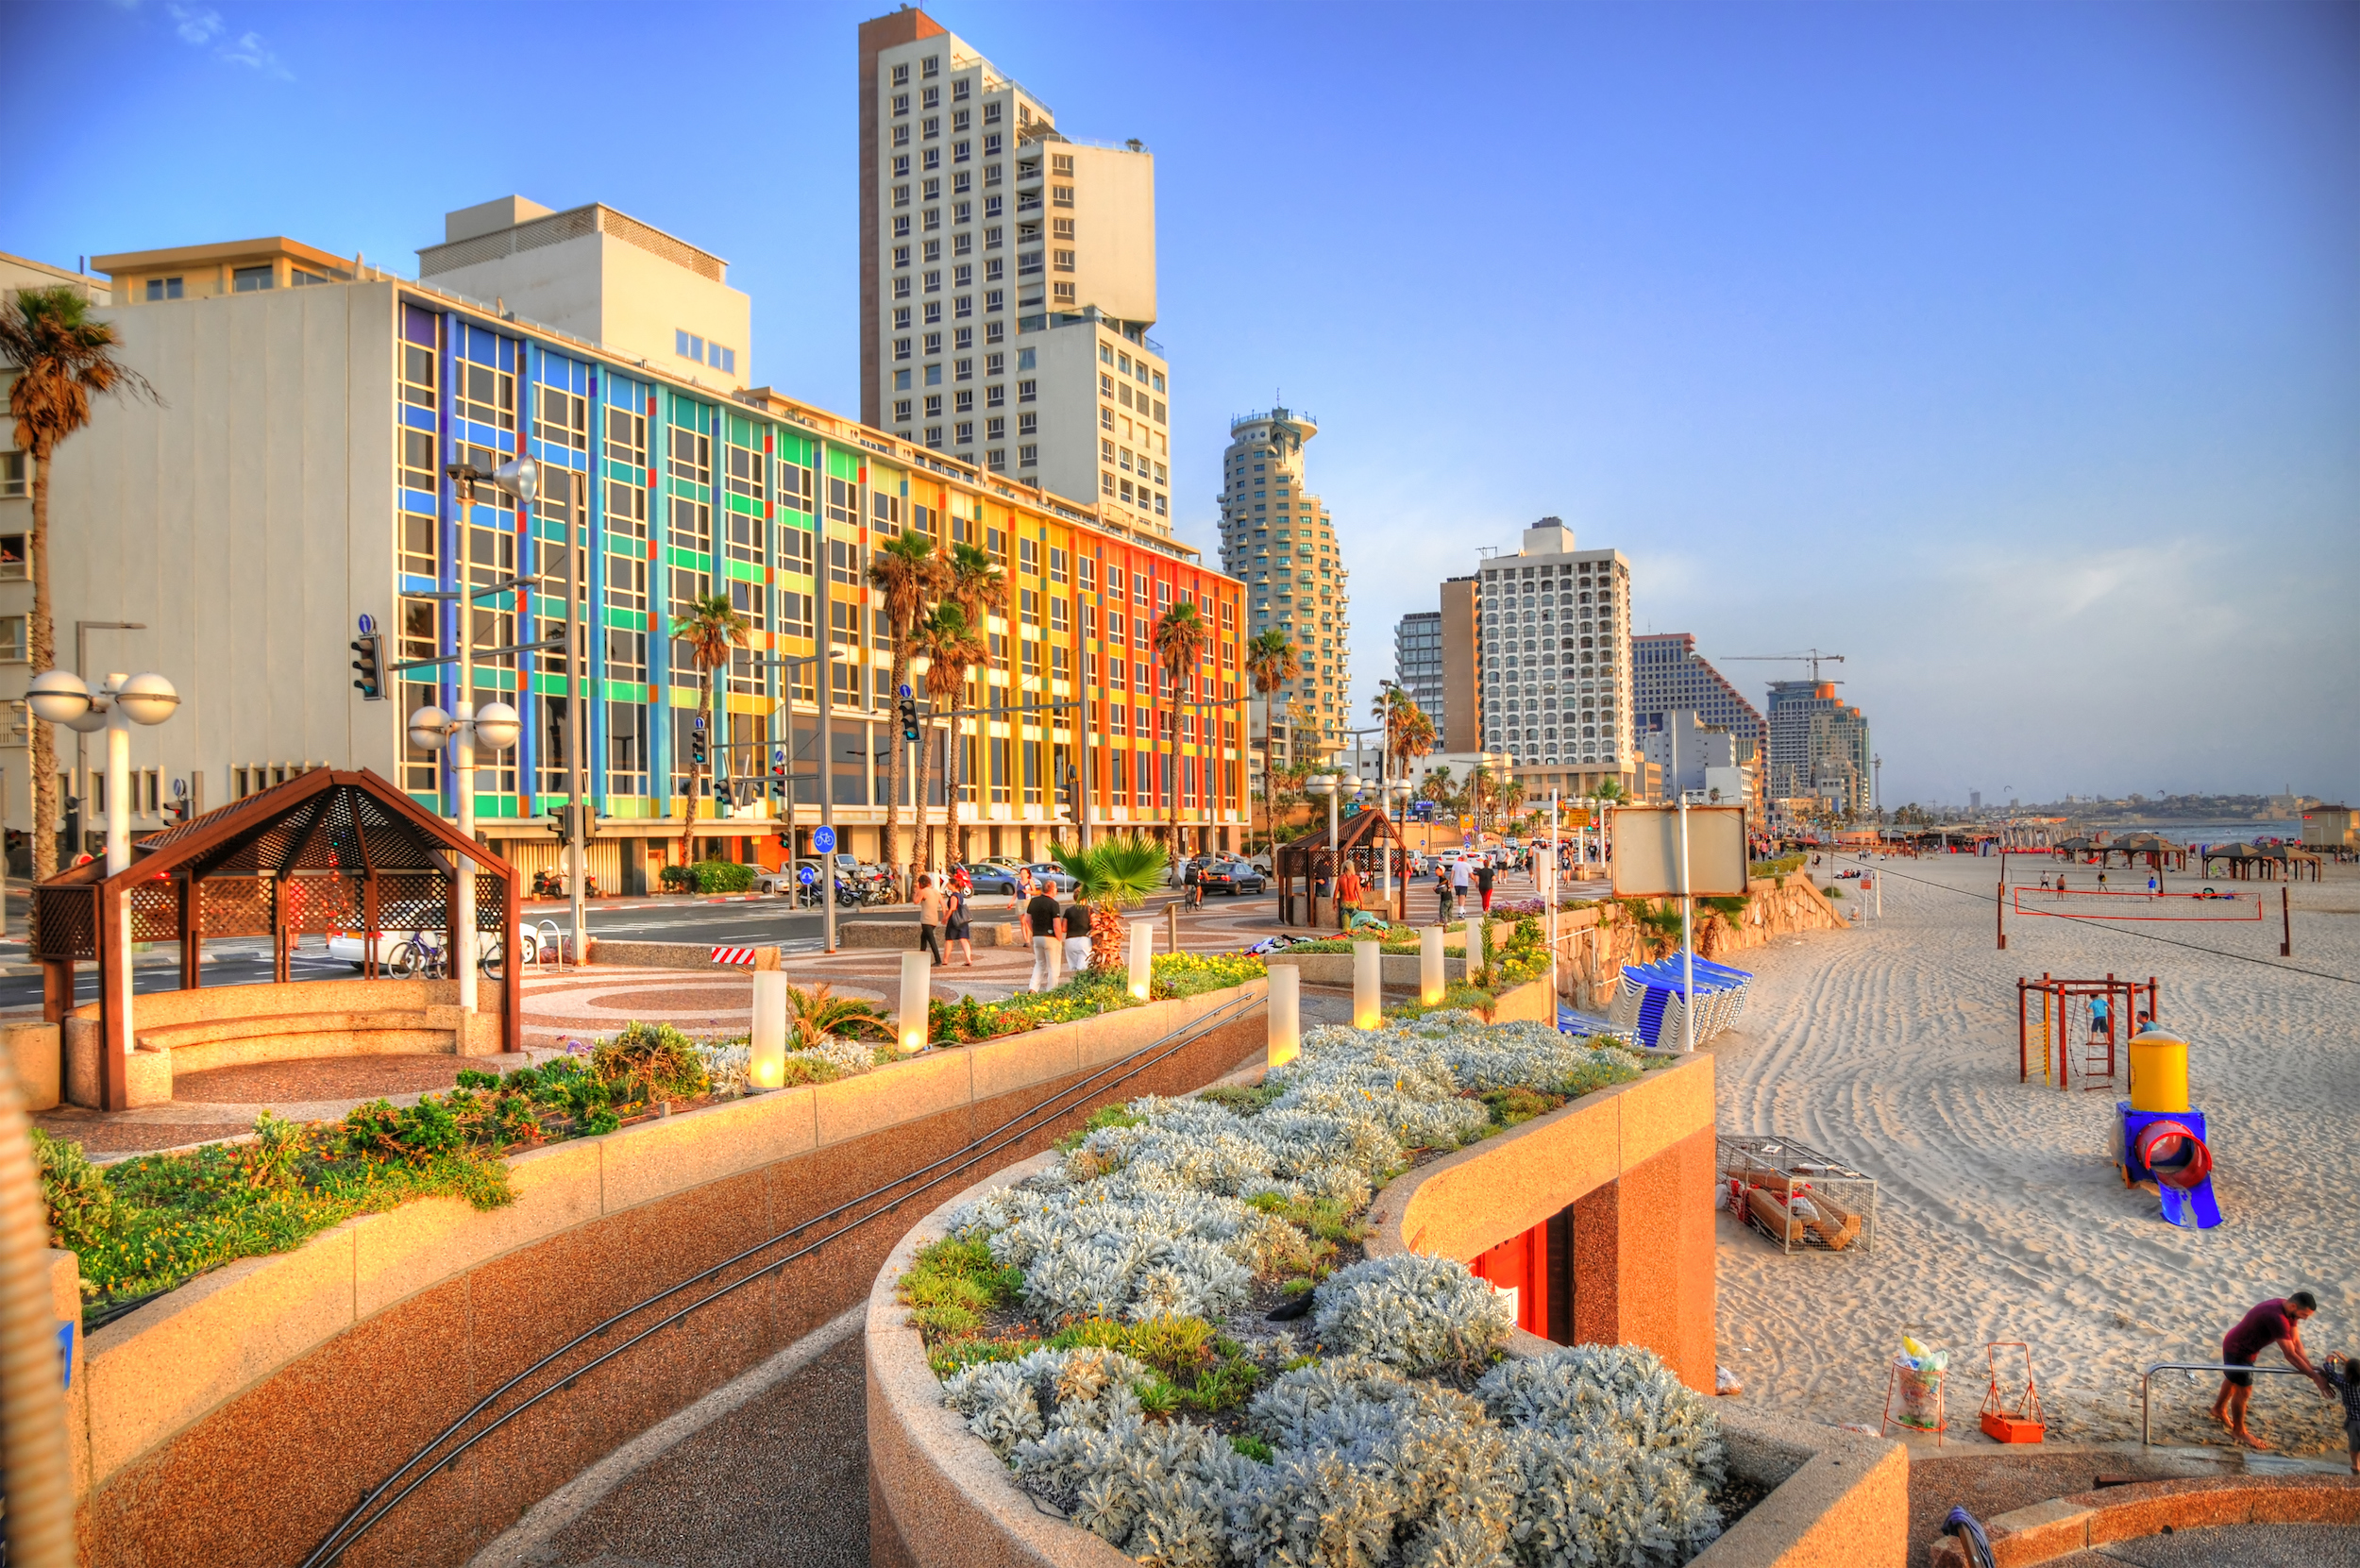 10 reasons why Tel Aviv should be your next holiday destination